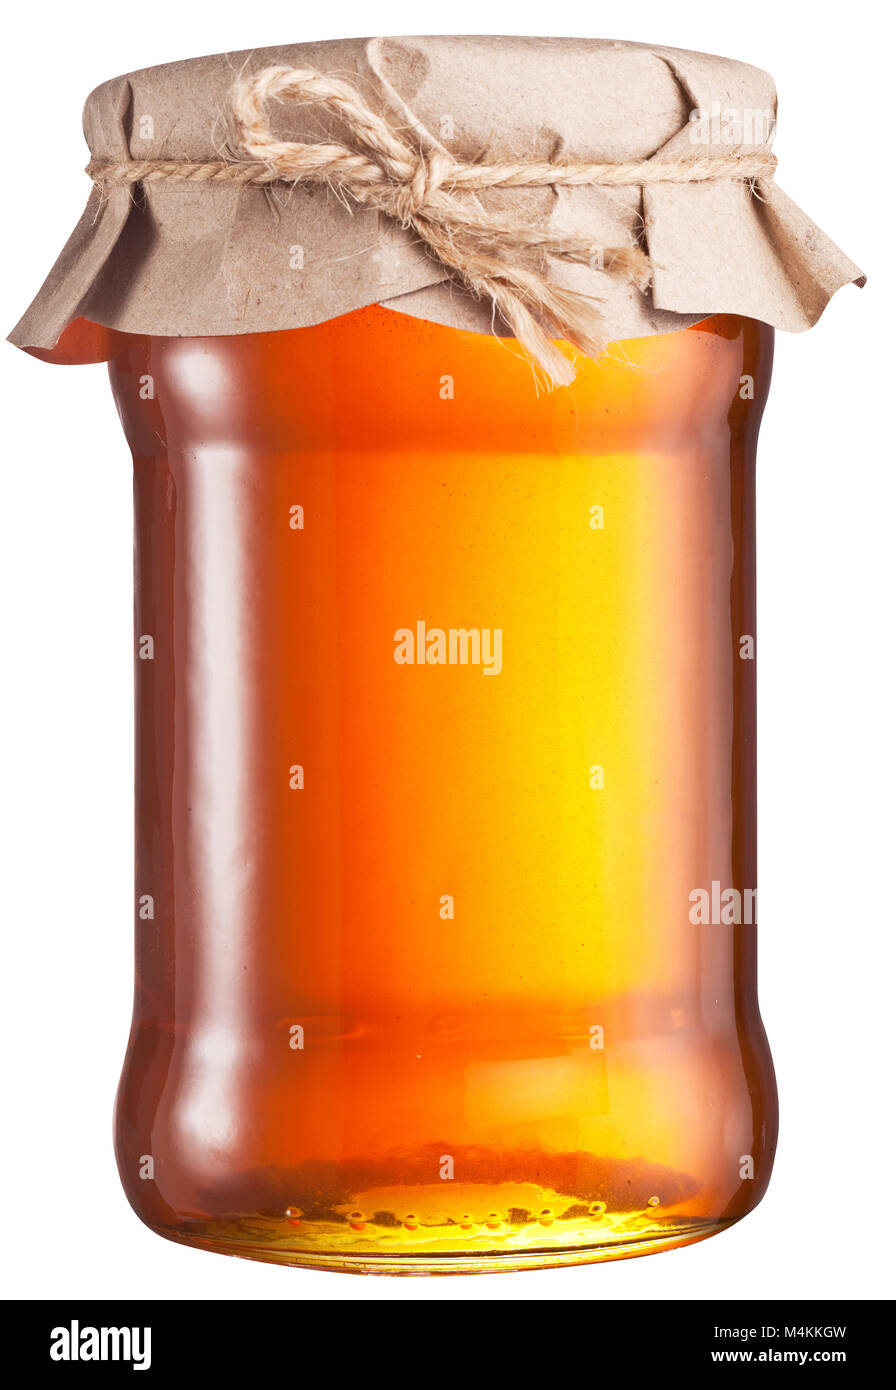 Jar full of fresh honey. File contains clipping path. - Stock Image